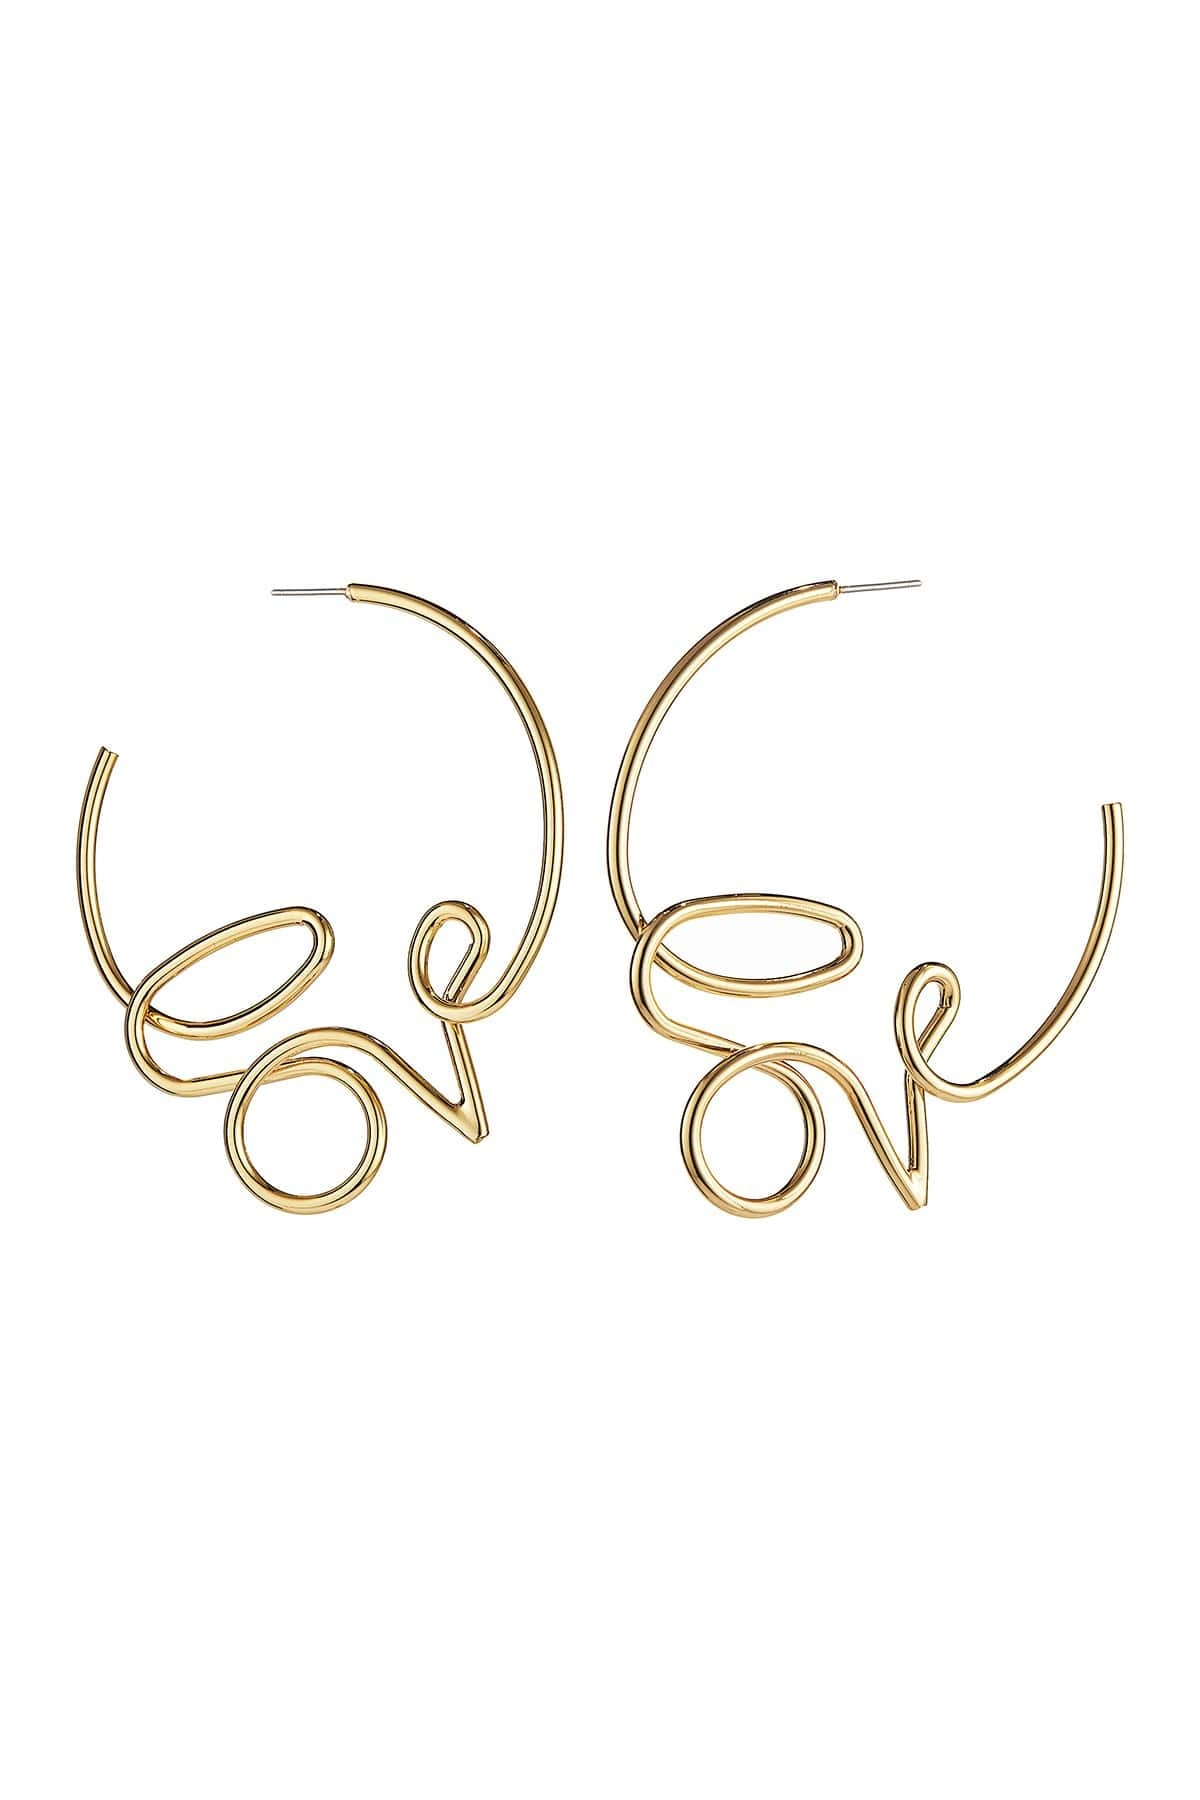 It's A Date: Flirty Looks + Gifts for Valentine's Day, Galentine's Gifts, Jenny Bird Love hoop earrings